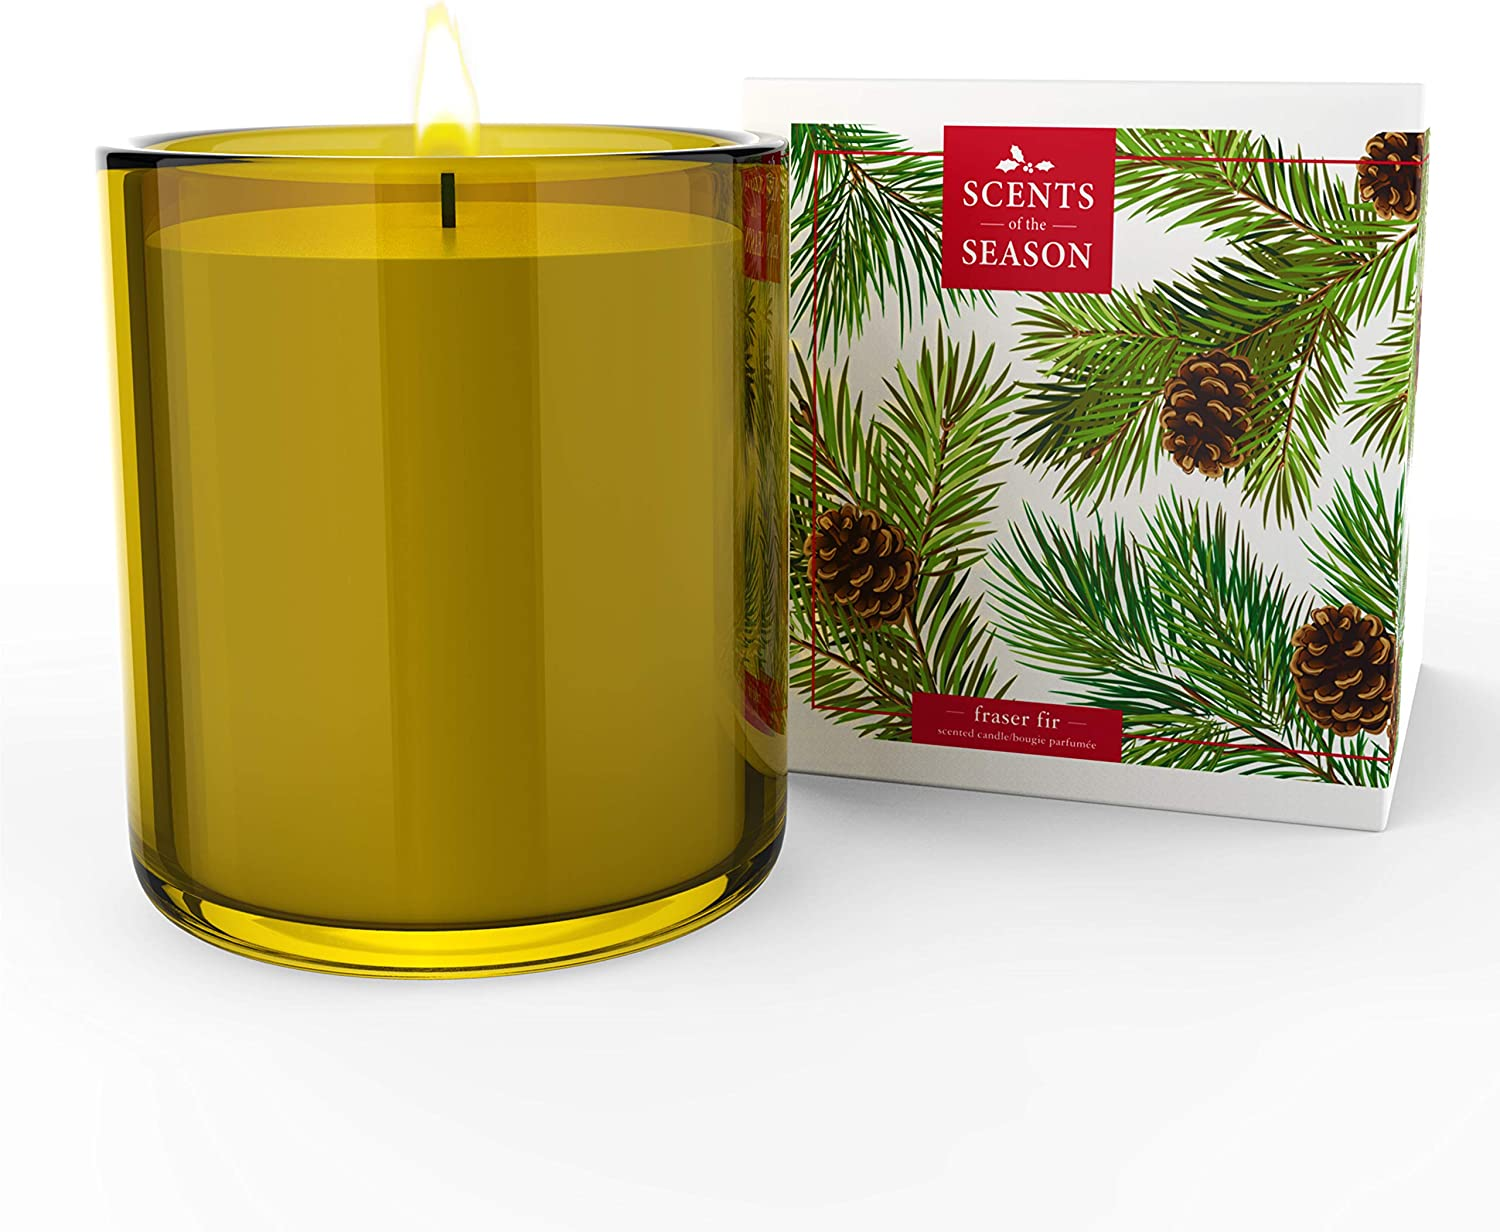 Frasier Fir Scented Candle | Non-Toxic Long Burning Soy Candles | Festive Home Fragrance | 8.5 oz Heavy Glass Jar | Hand Made in The USA